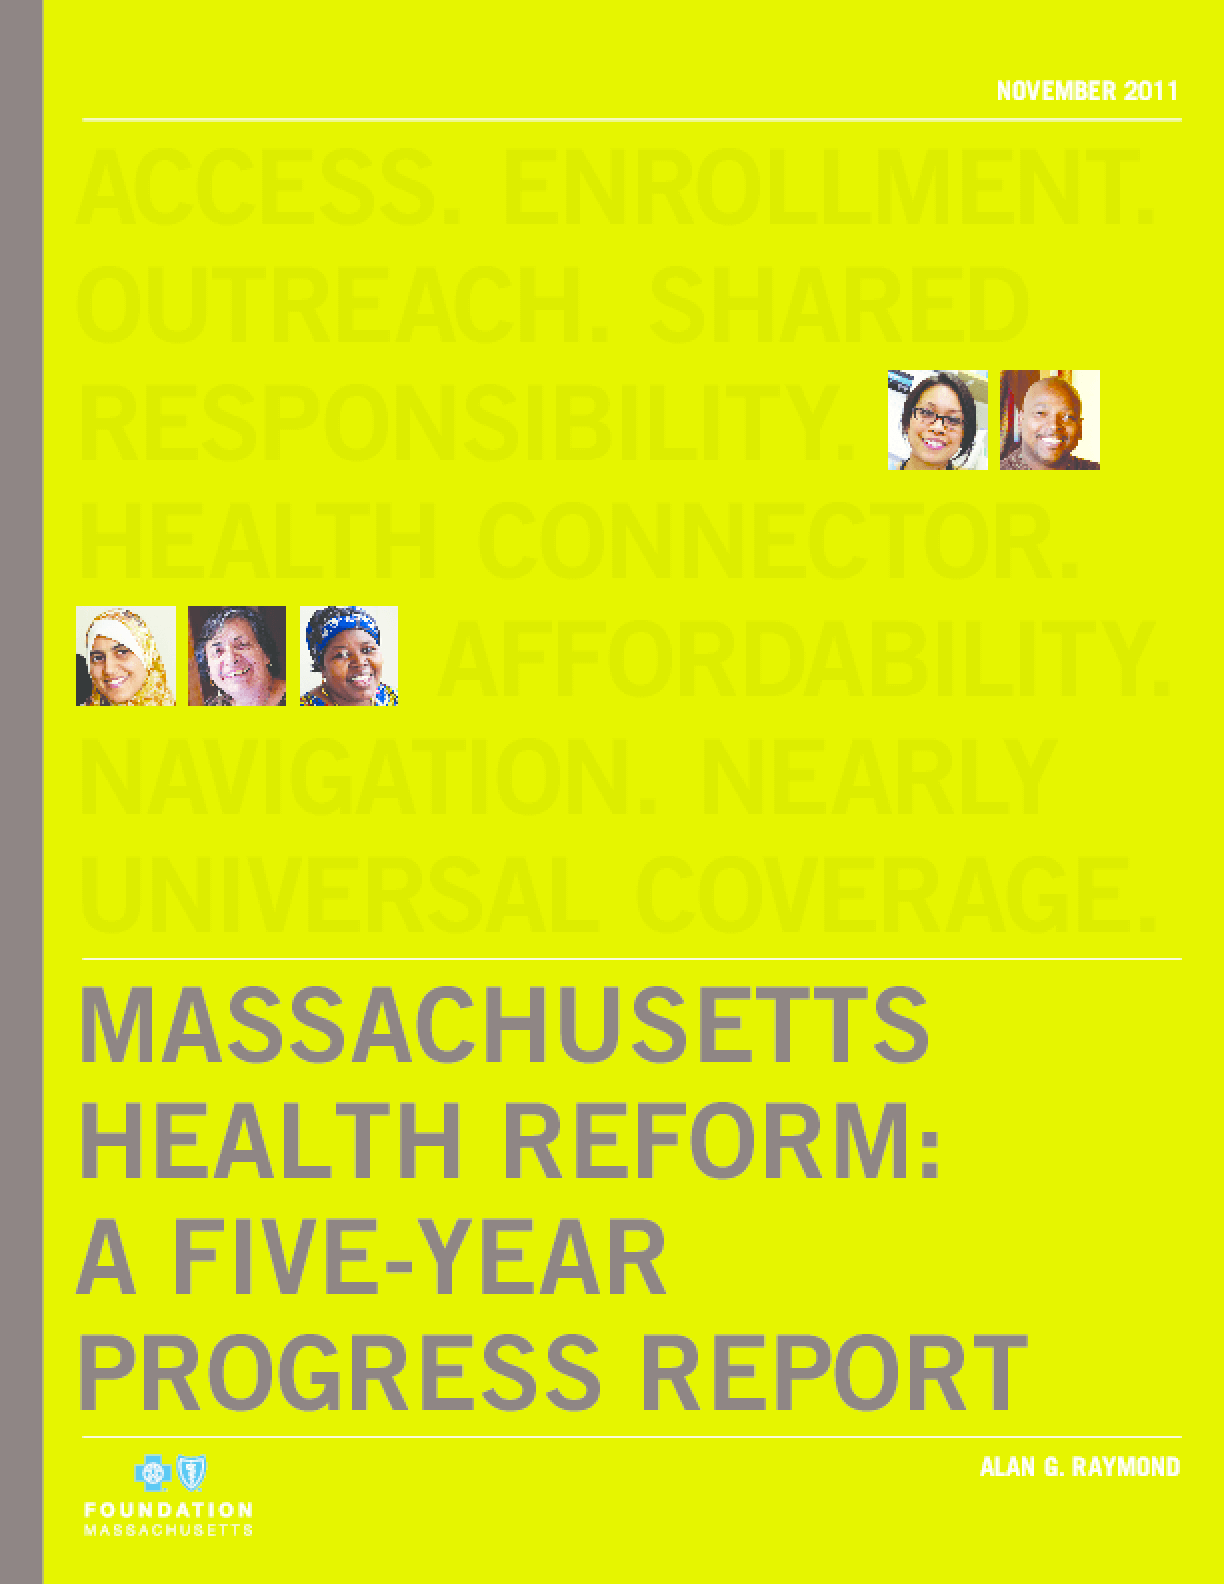 Massachusetts Health Reform: A Five-Year Progress Report